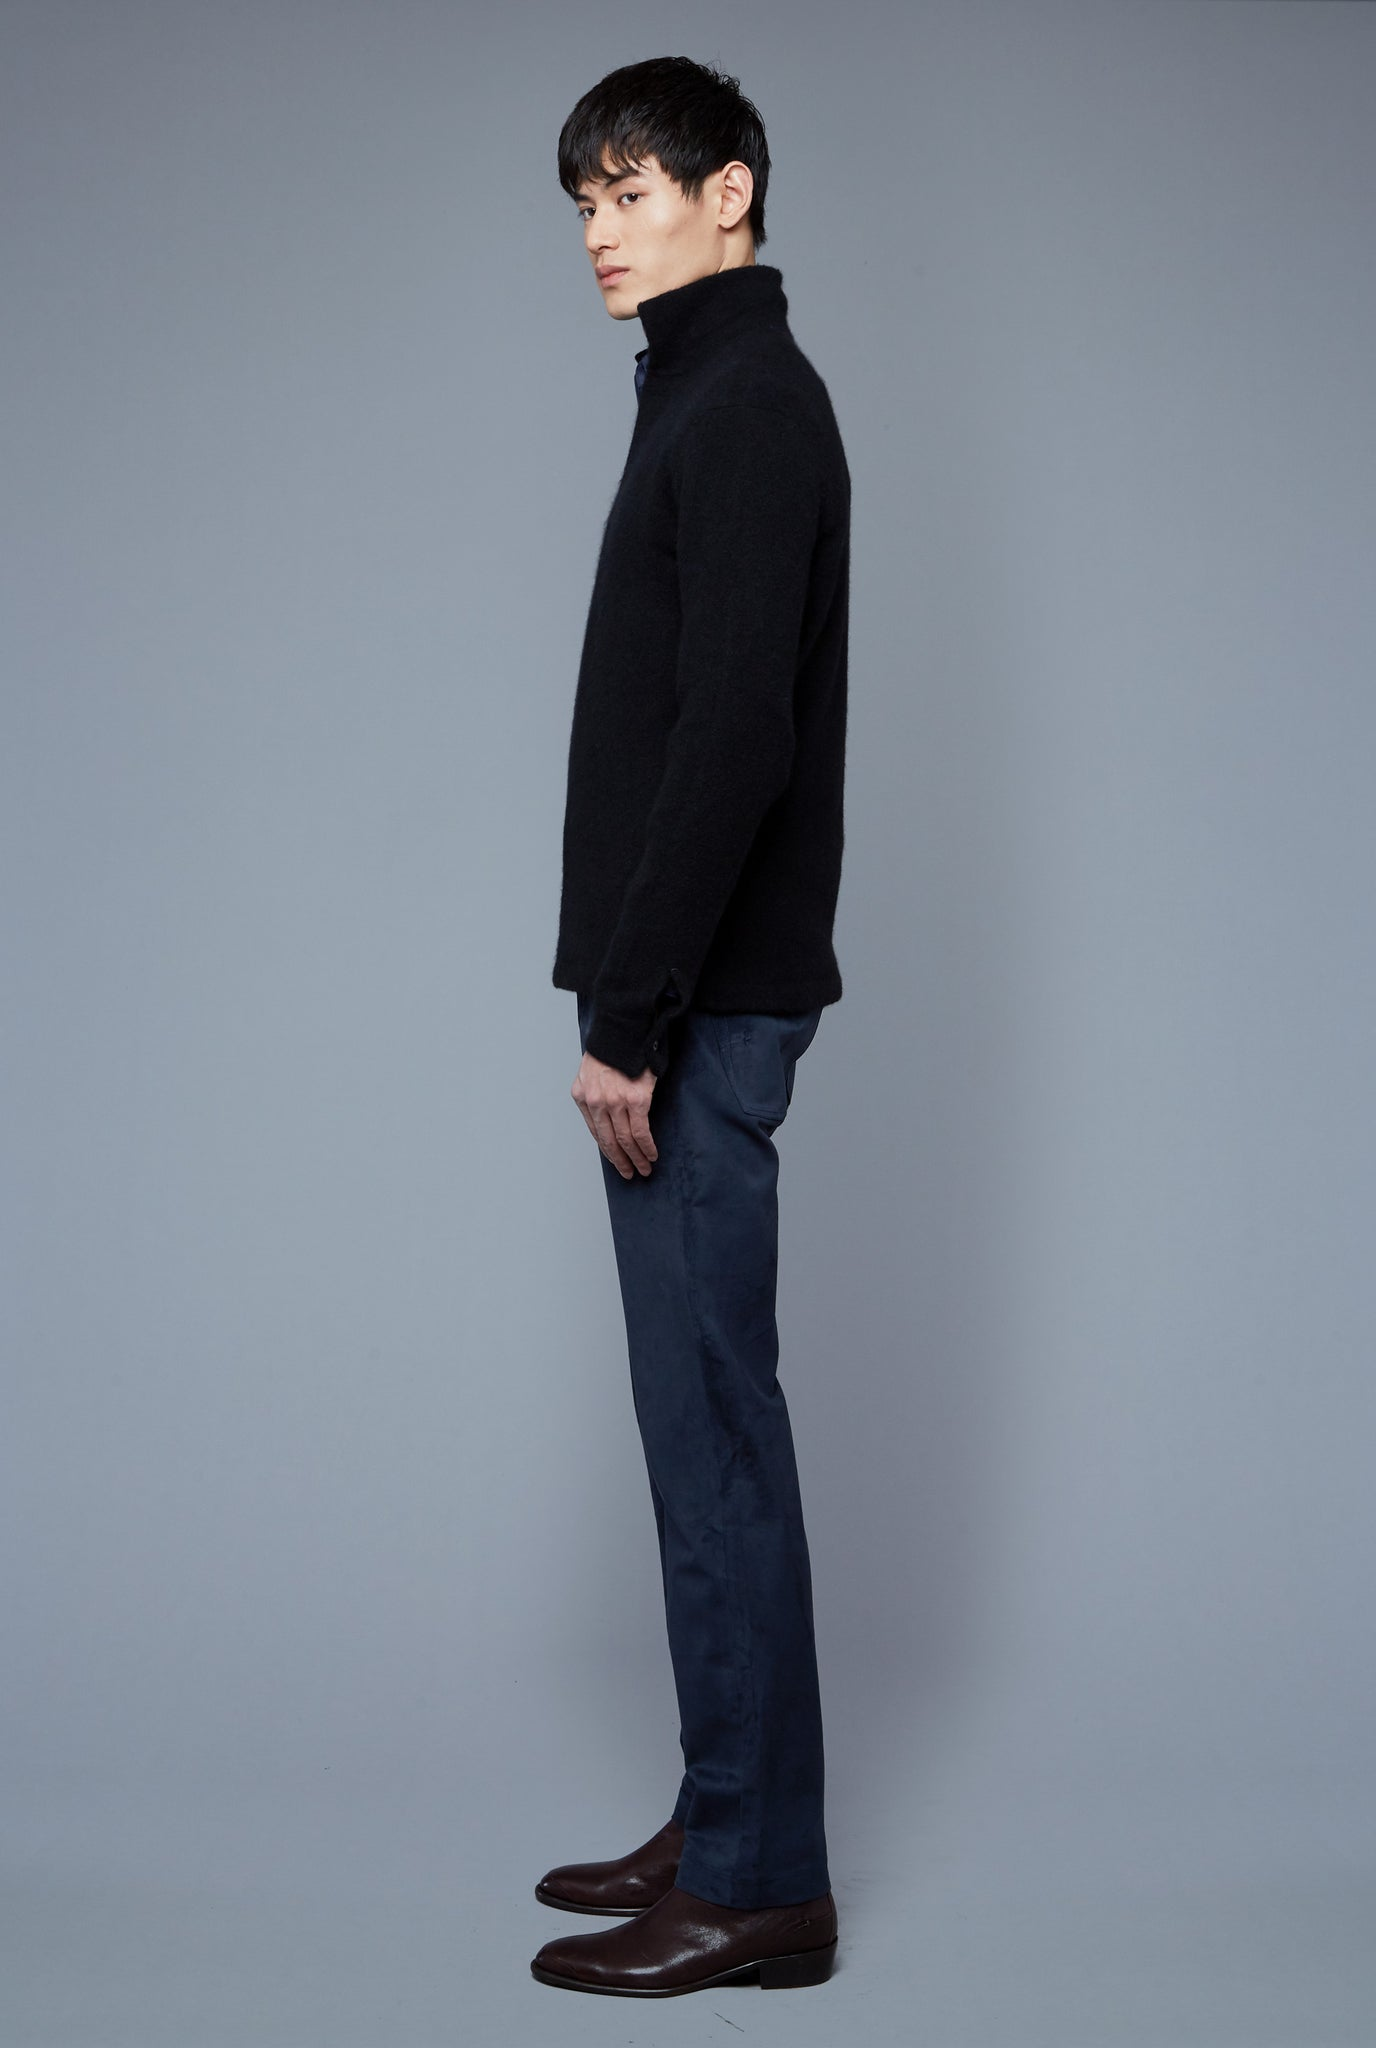 Side View: Model Qiang Li wearing Cashmere Boucle Sweater